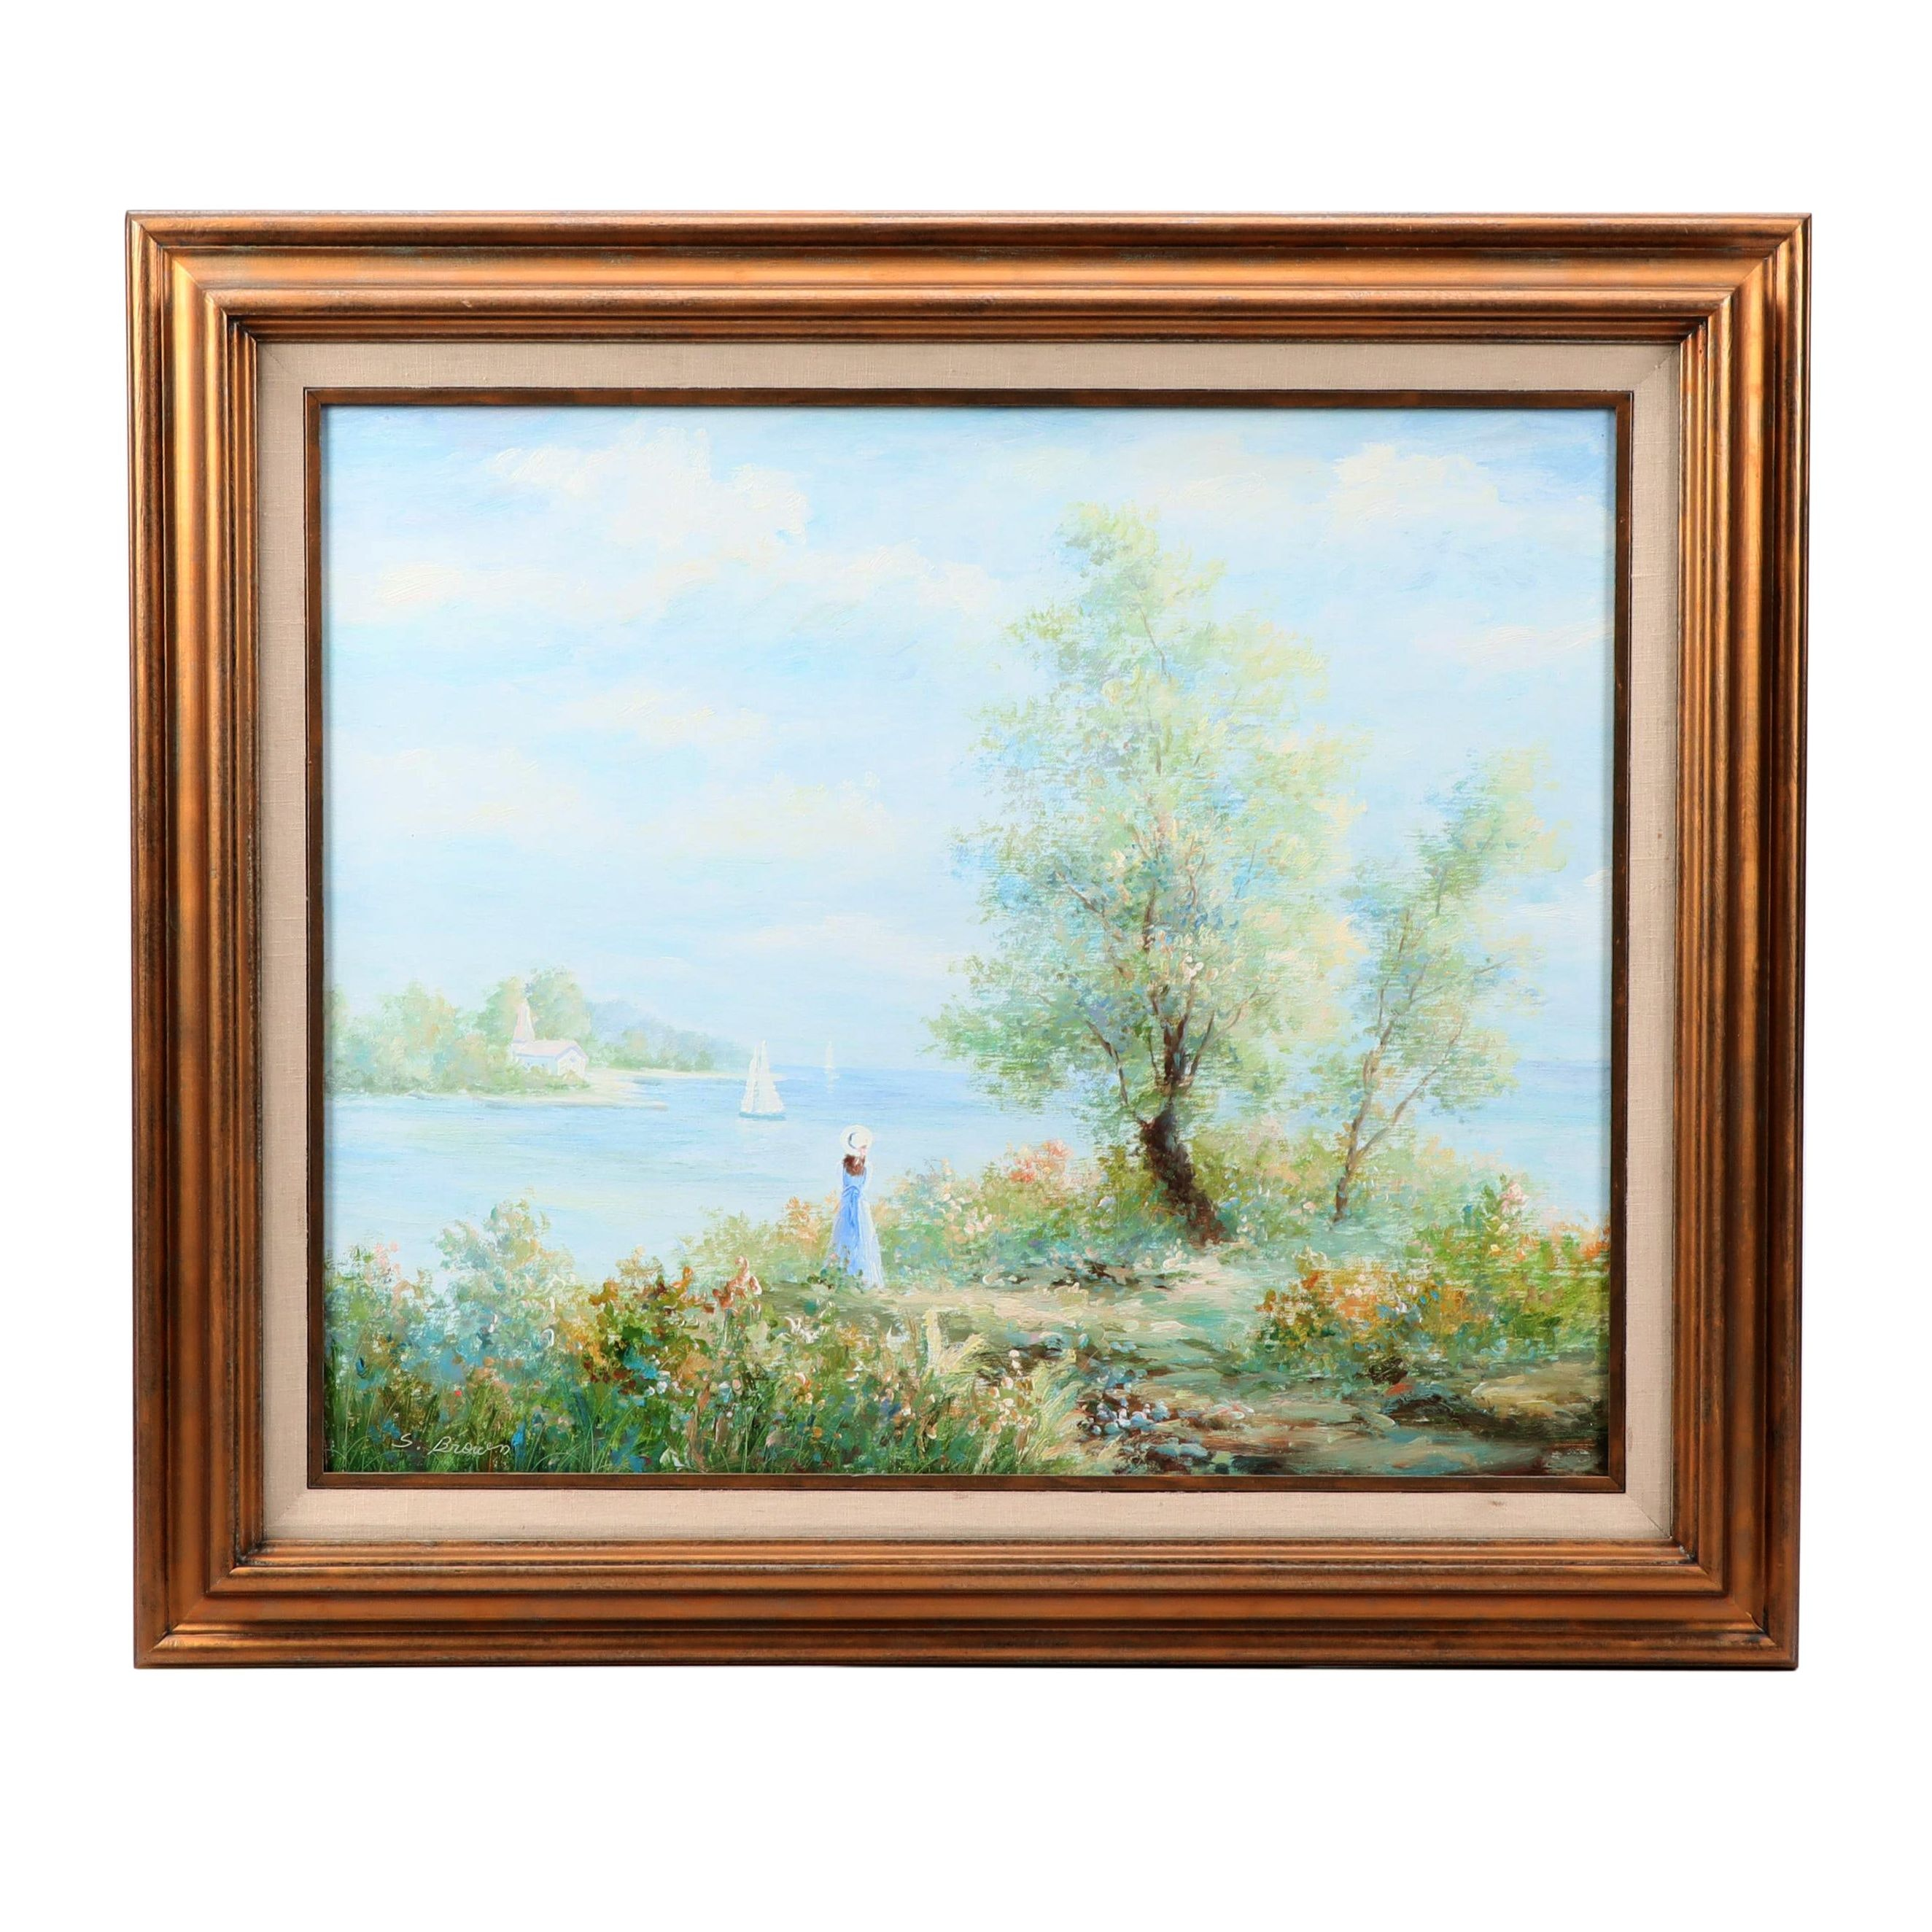 Oil Painting of a Woman in a Coastal Landscape